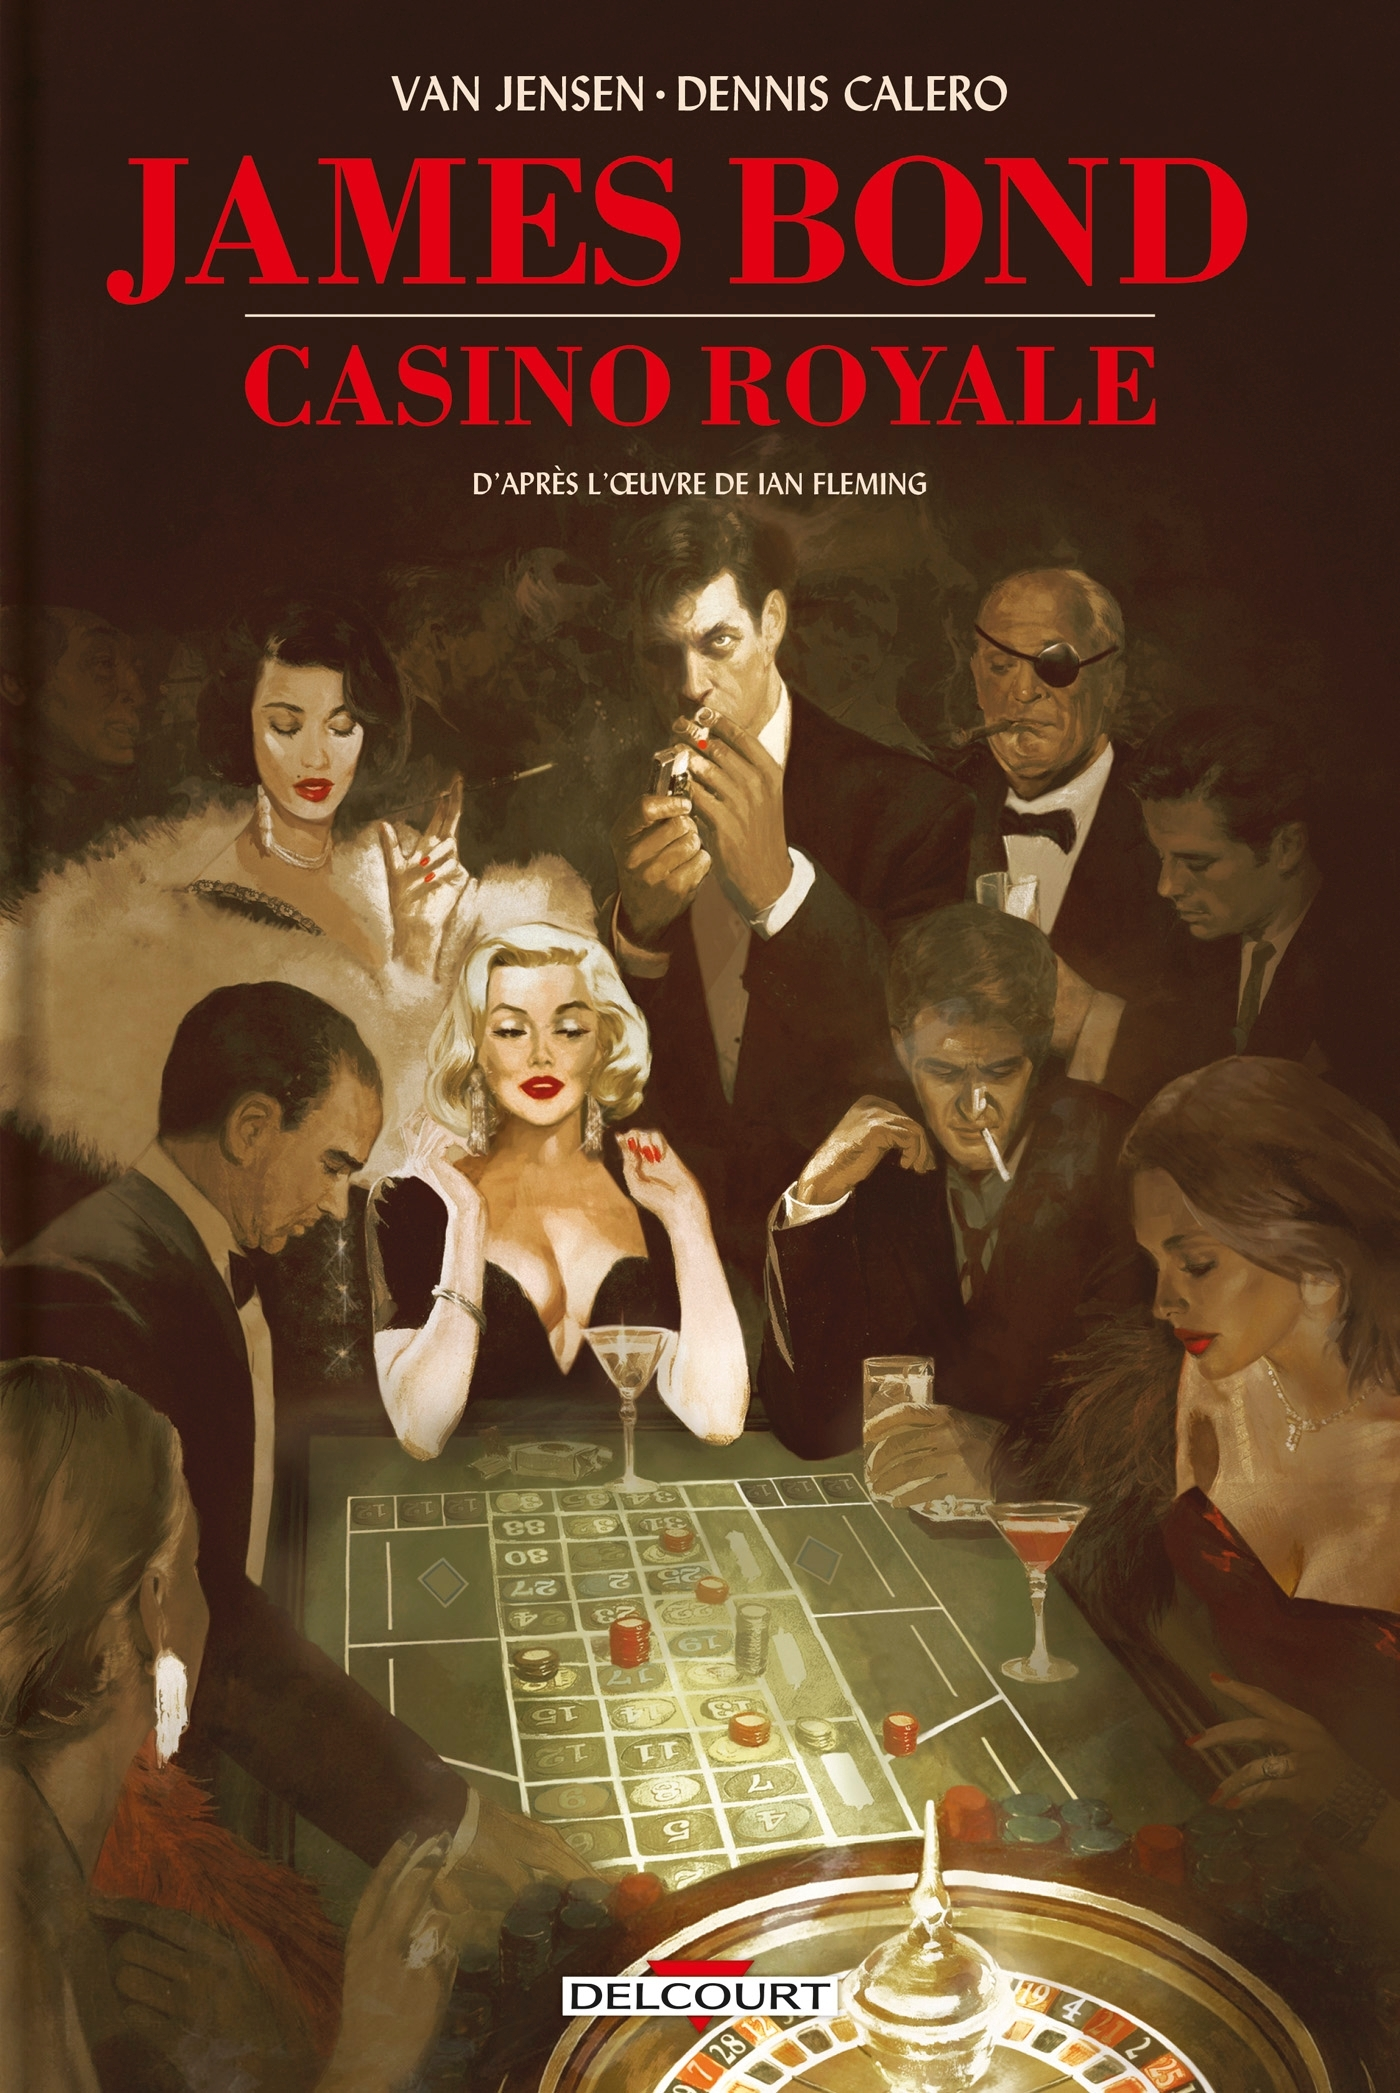 JAMES BOND - ONE-SHOT - JAMES BOND : CASINO ROYALE